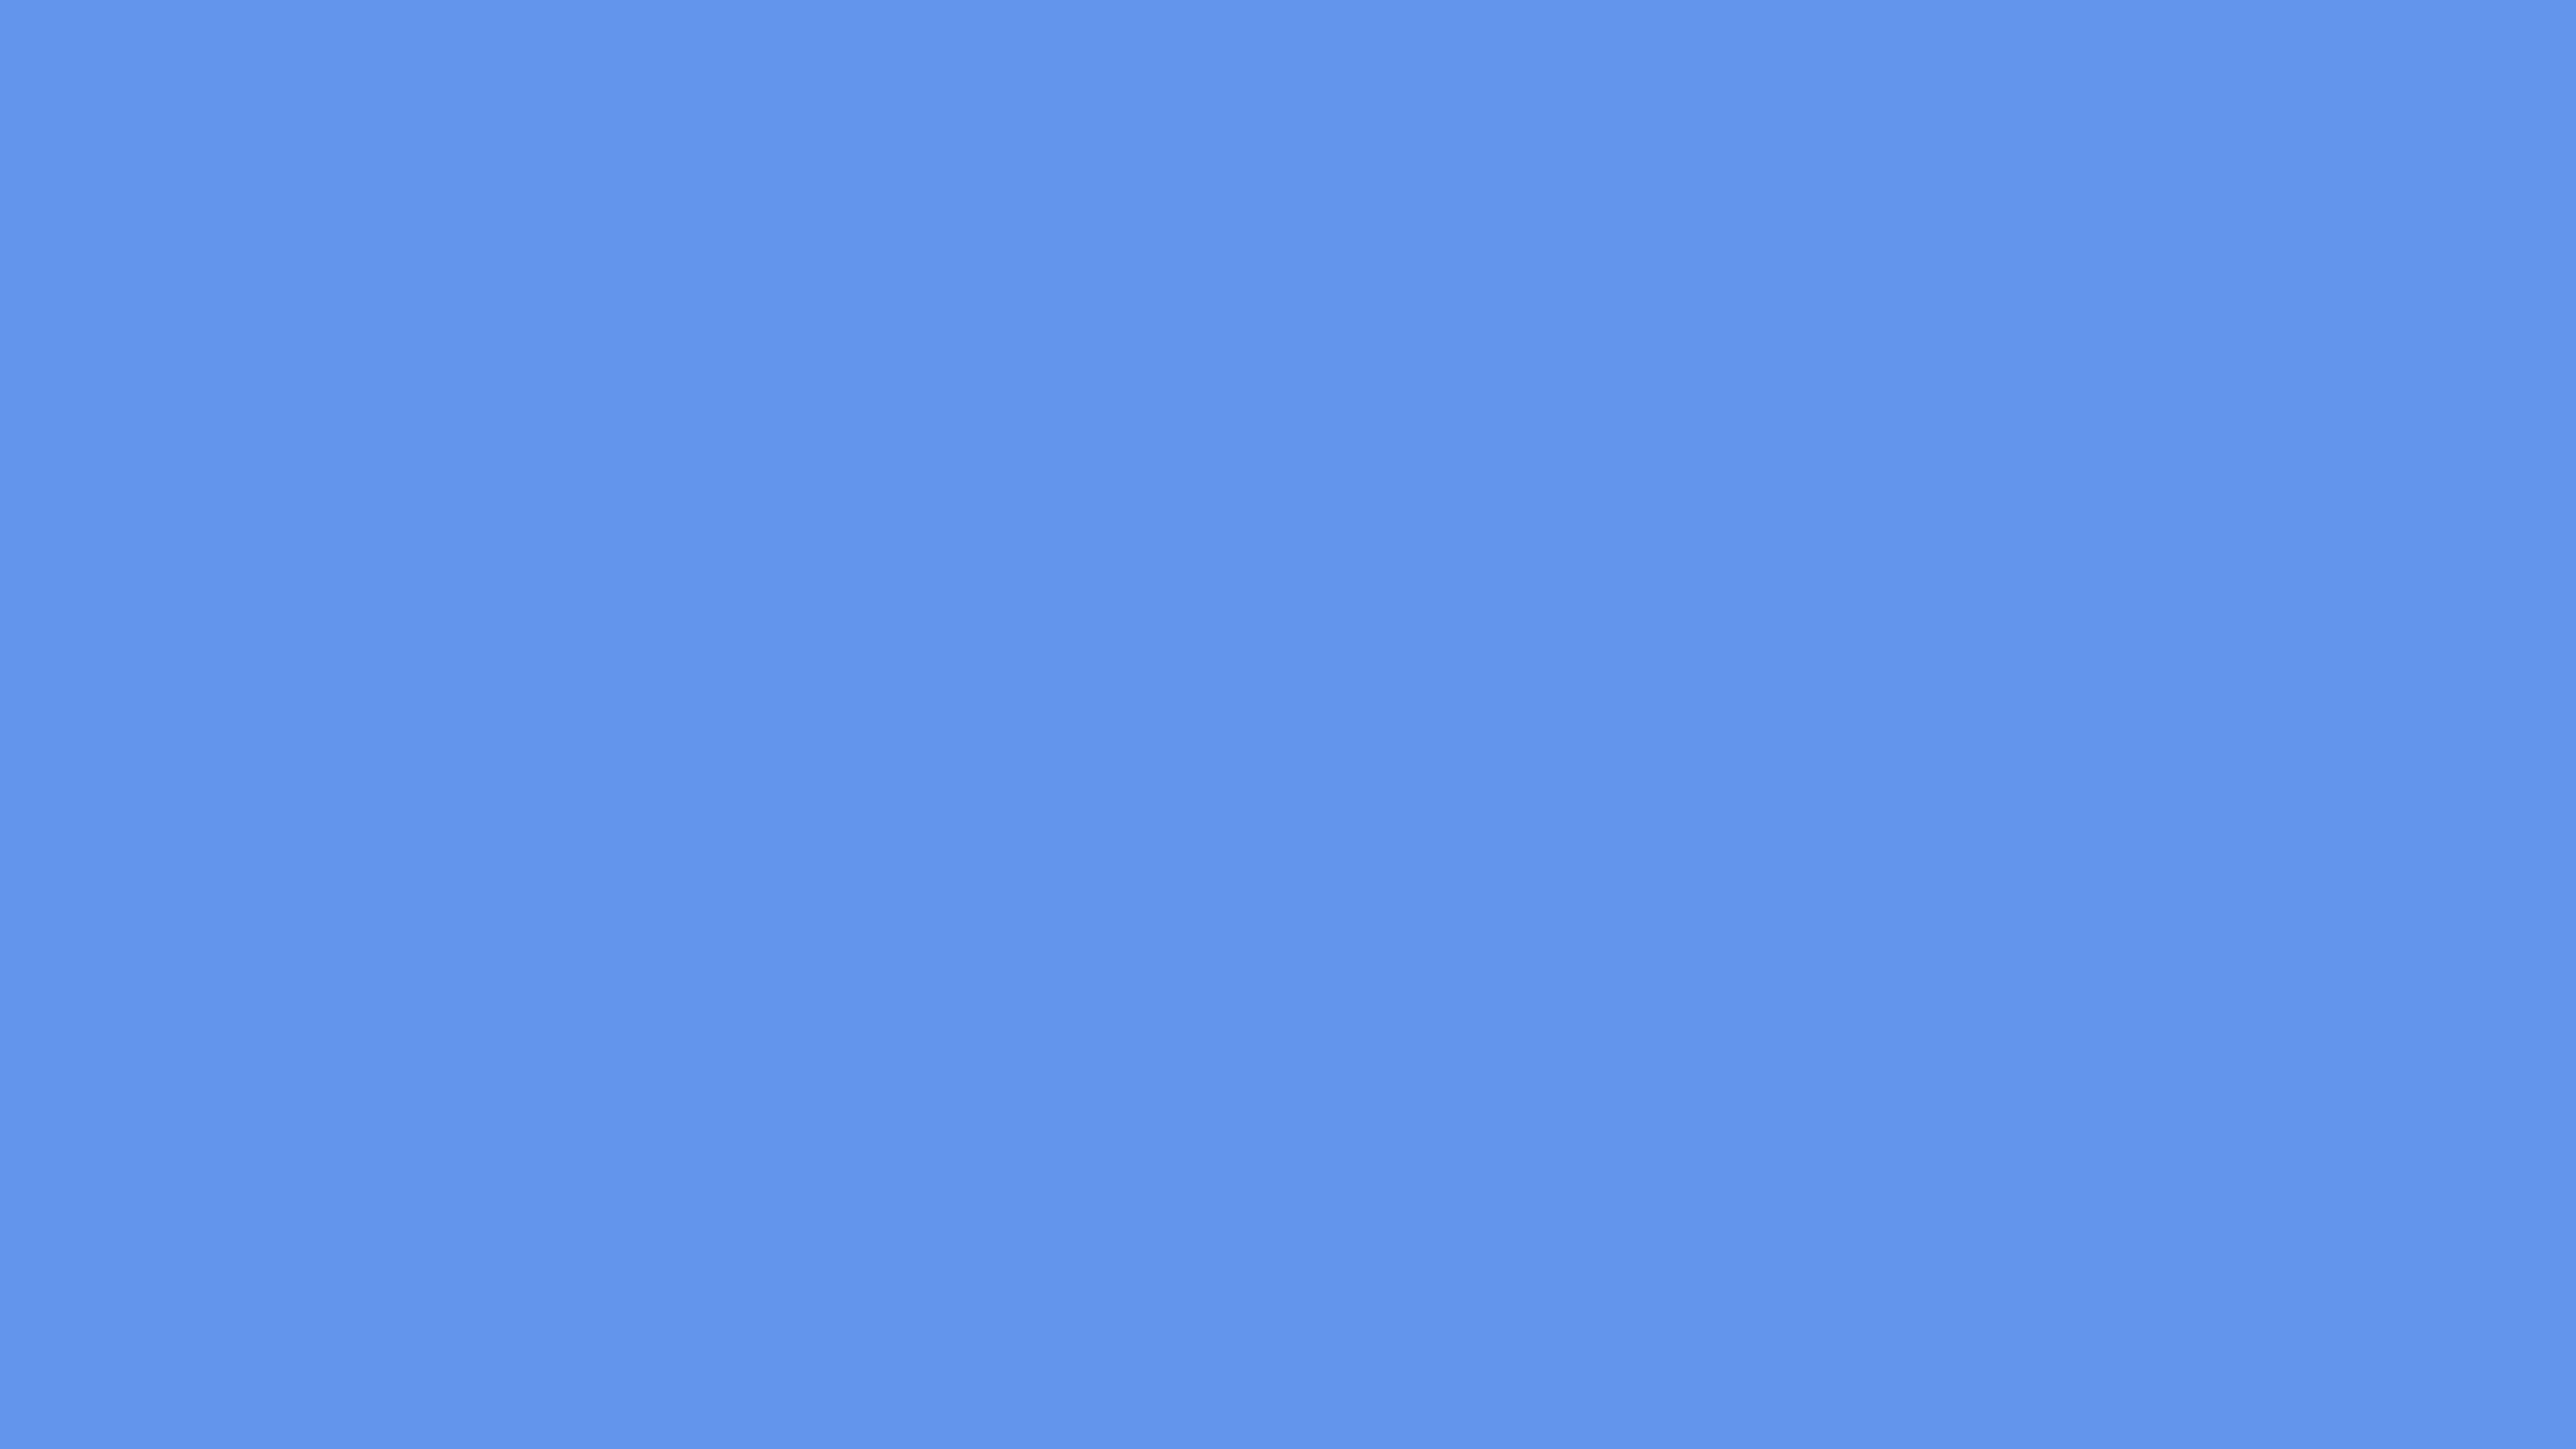 4096x2304 Cornflower Blue Solid Color Background